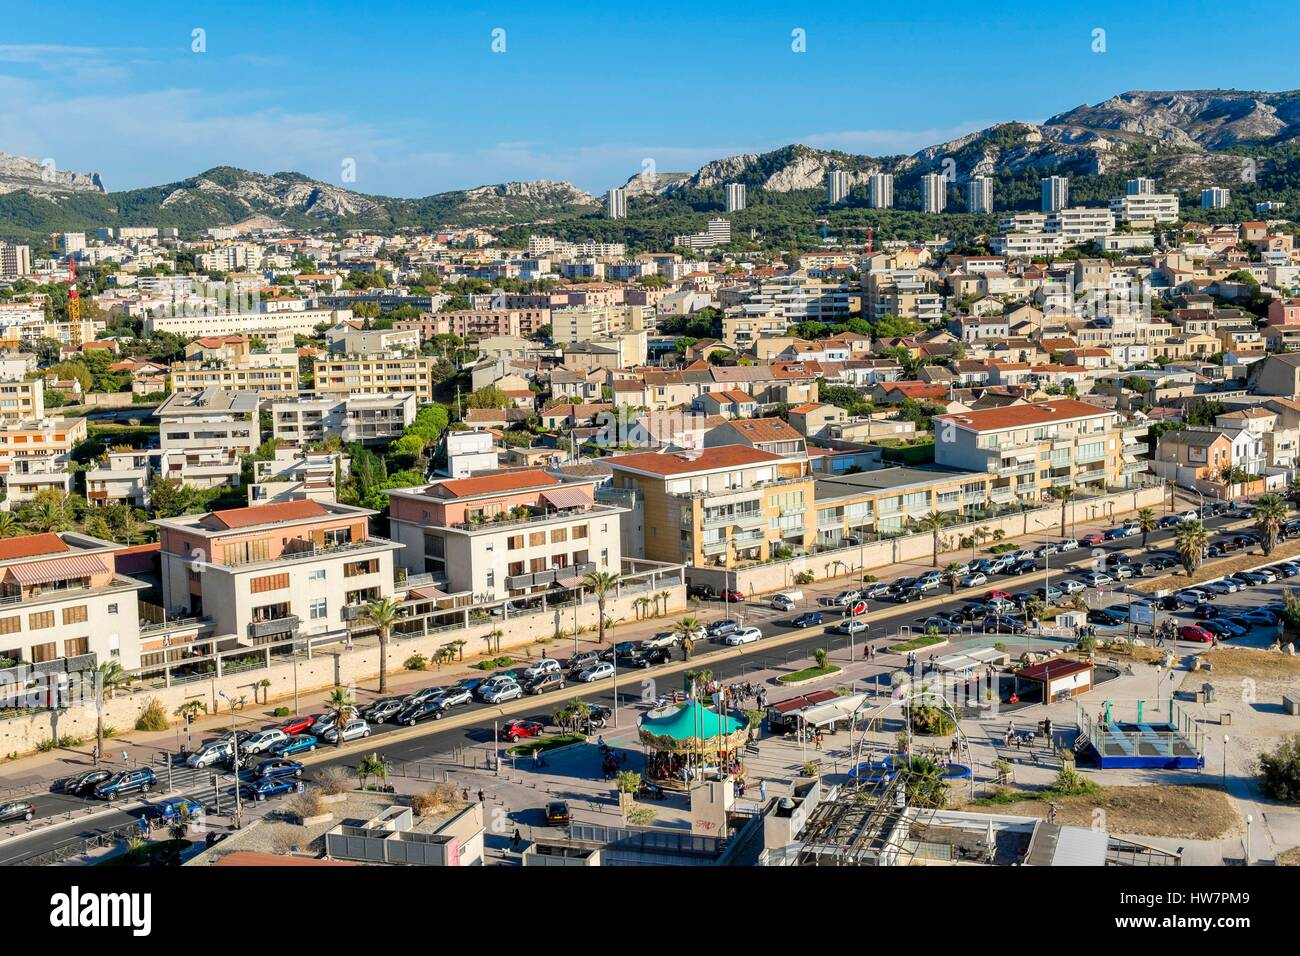 France, Bouches du Rhone, Marseille, the Prado beaches, avenue Pierre Mendes France (aerial view) - Stock Image